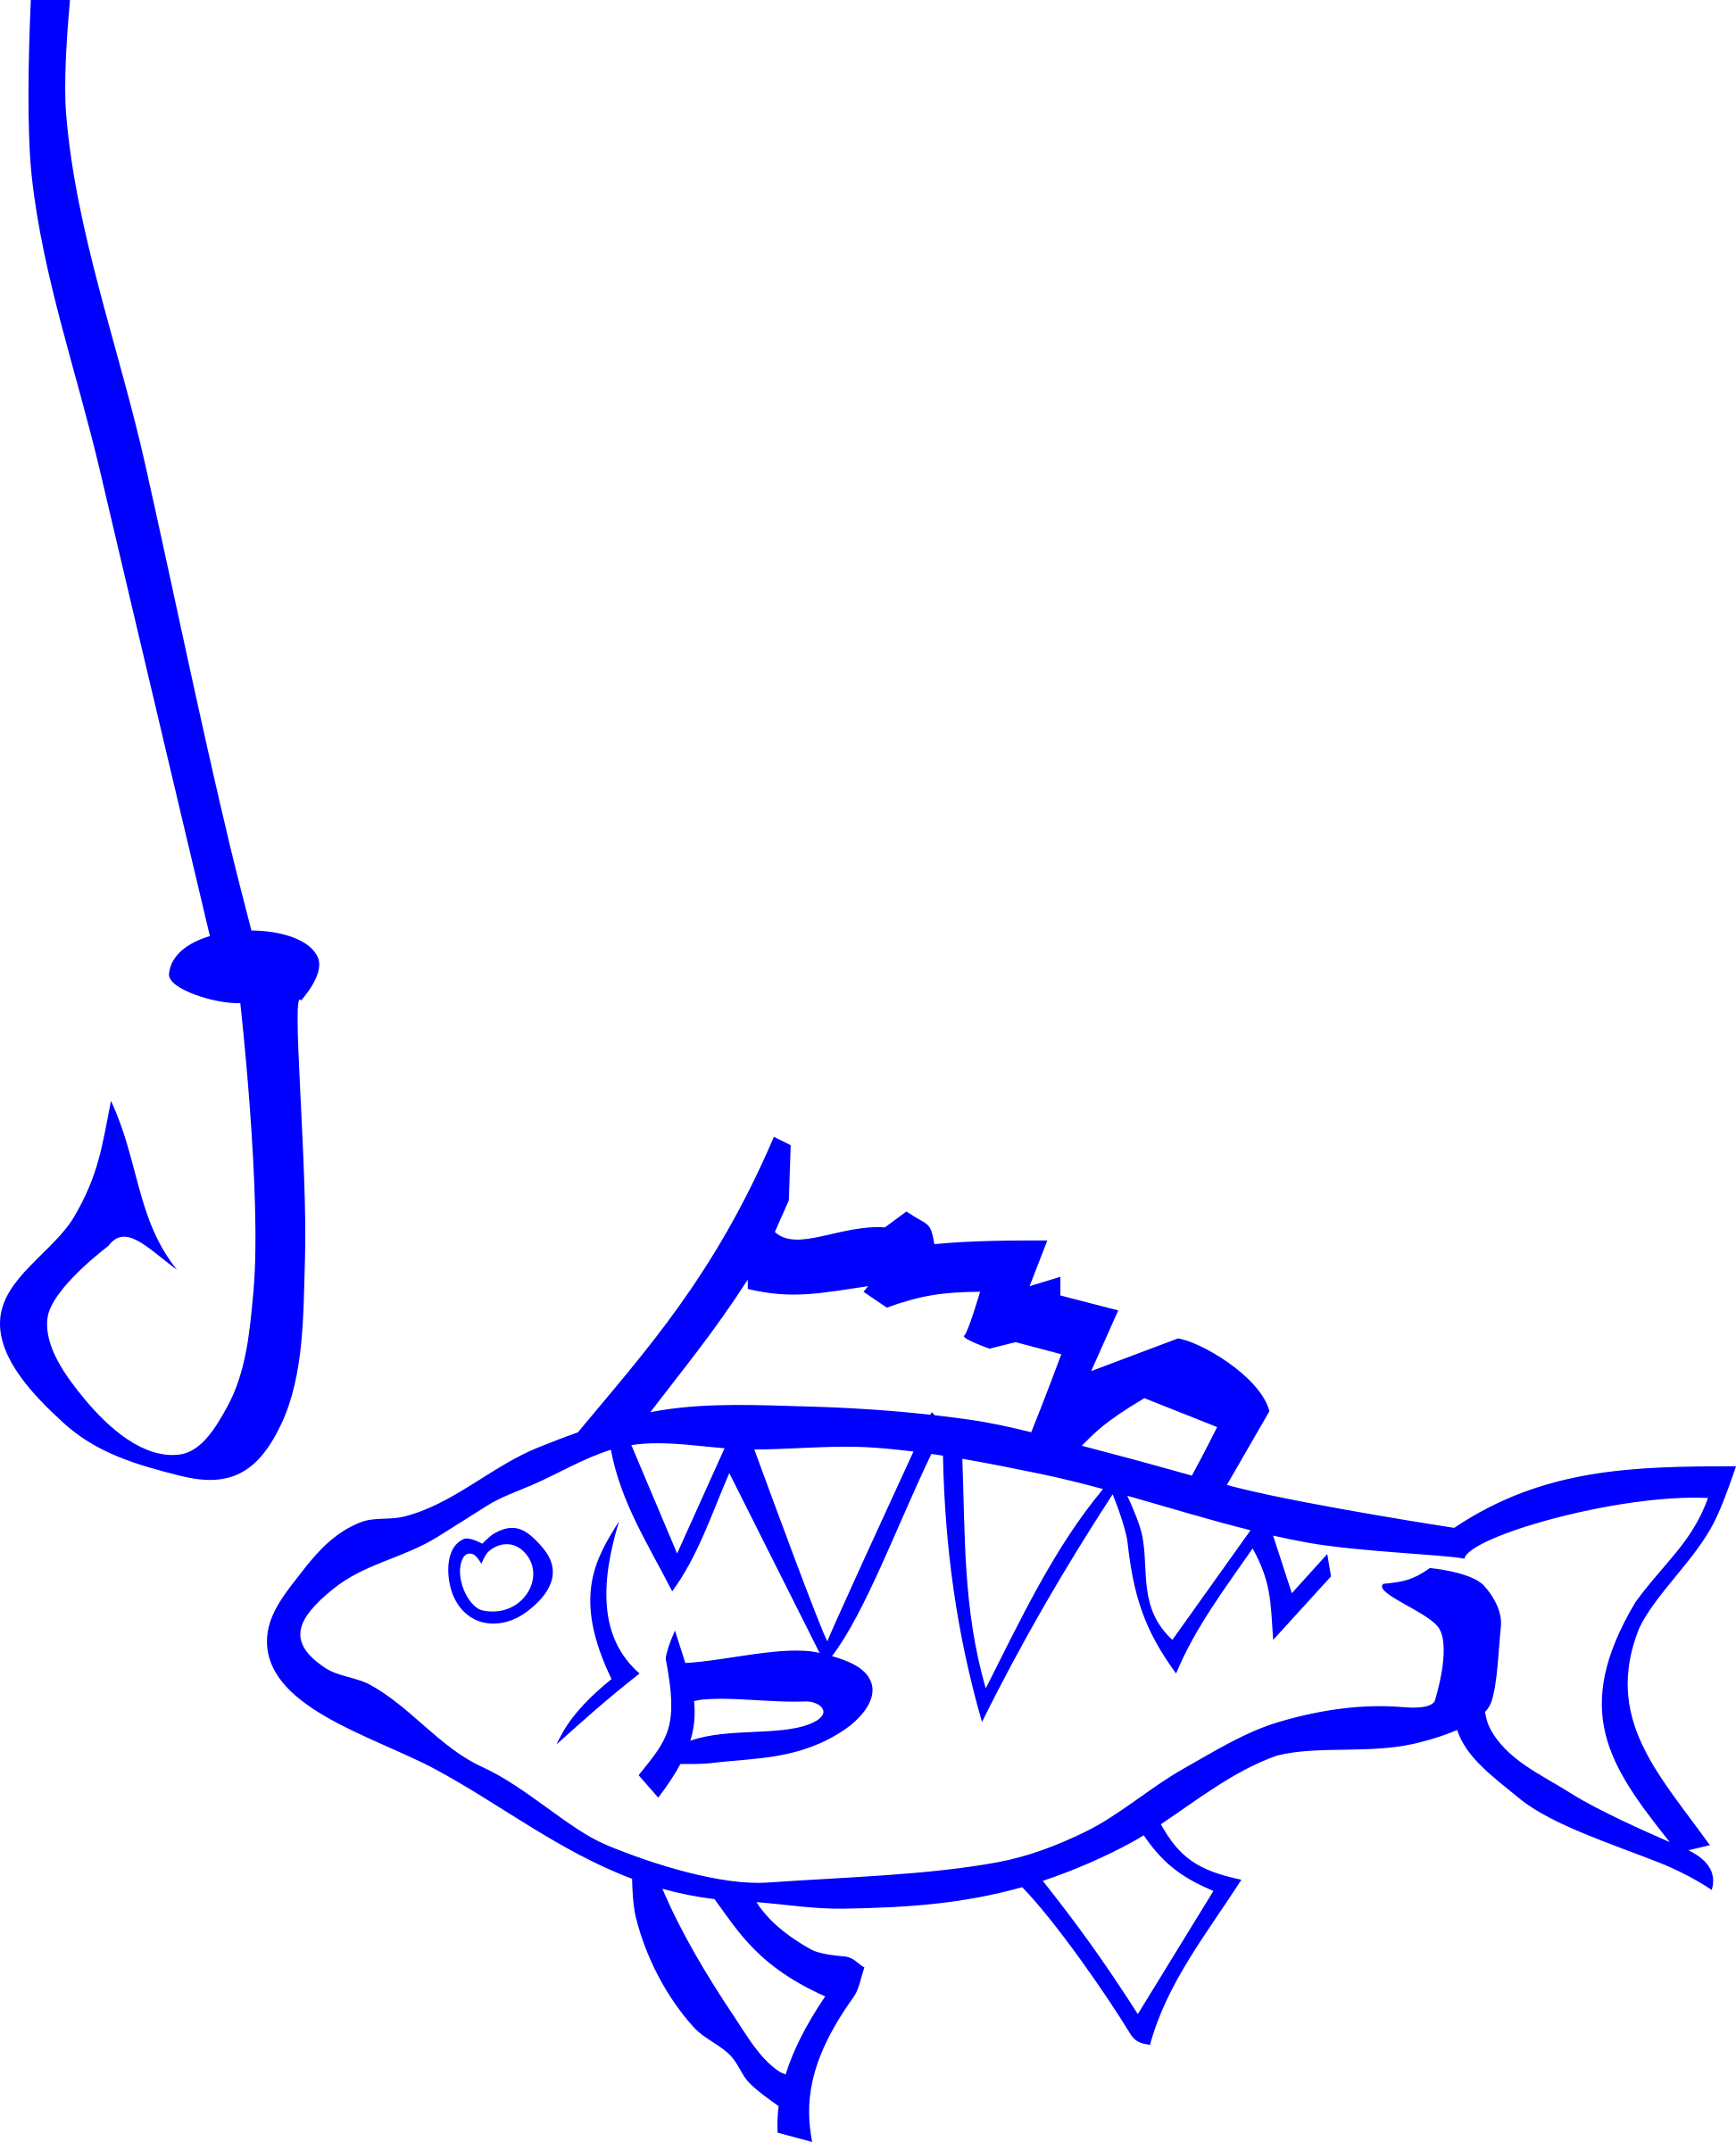 svg freeuse Graffiti big image png. Fish hook clipart black and white